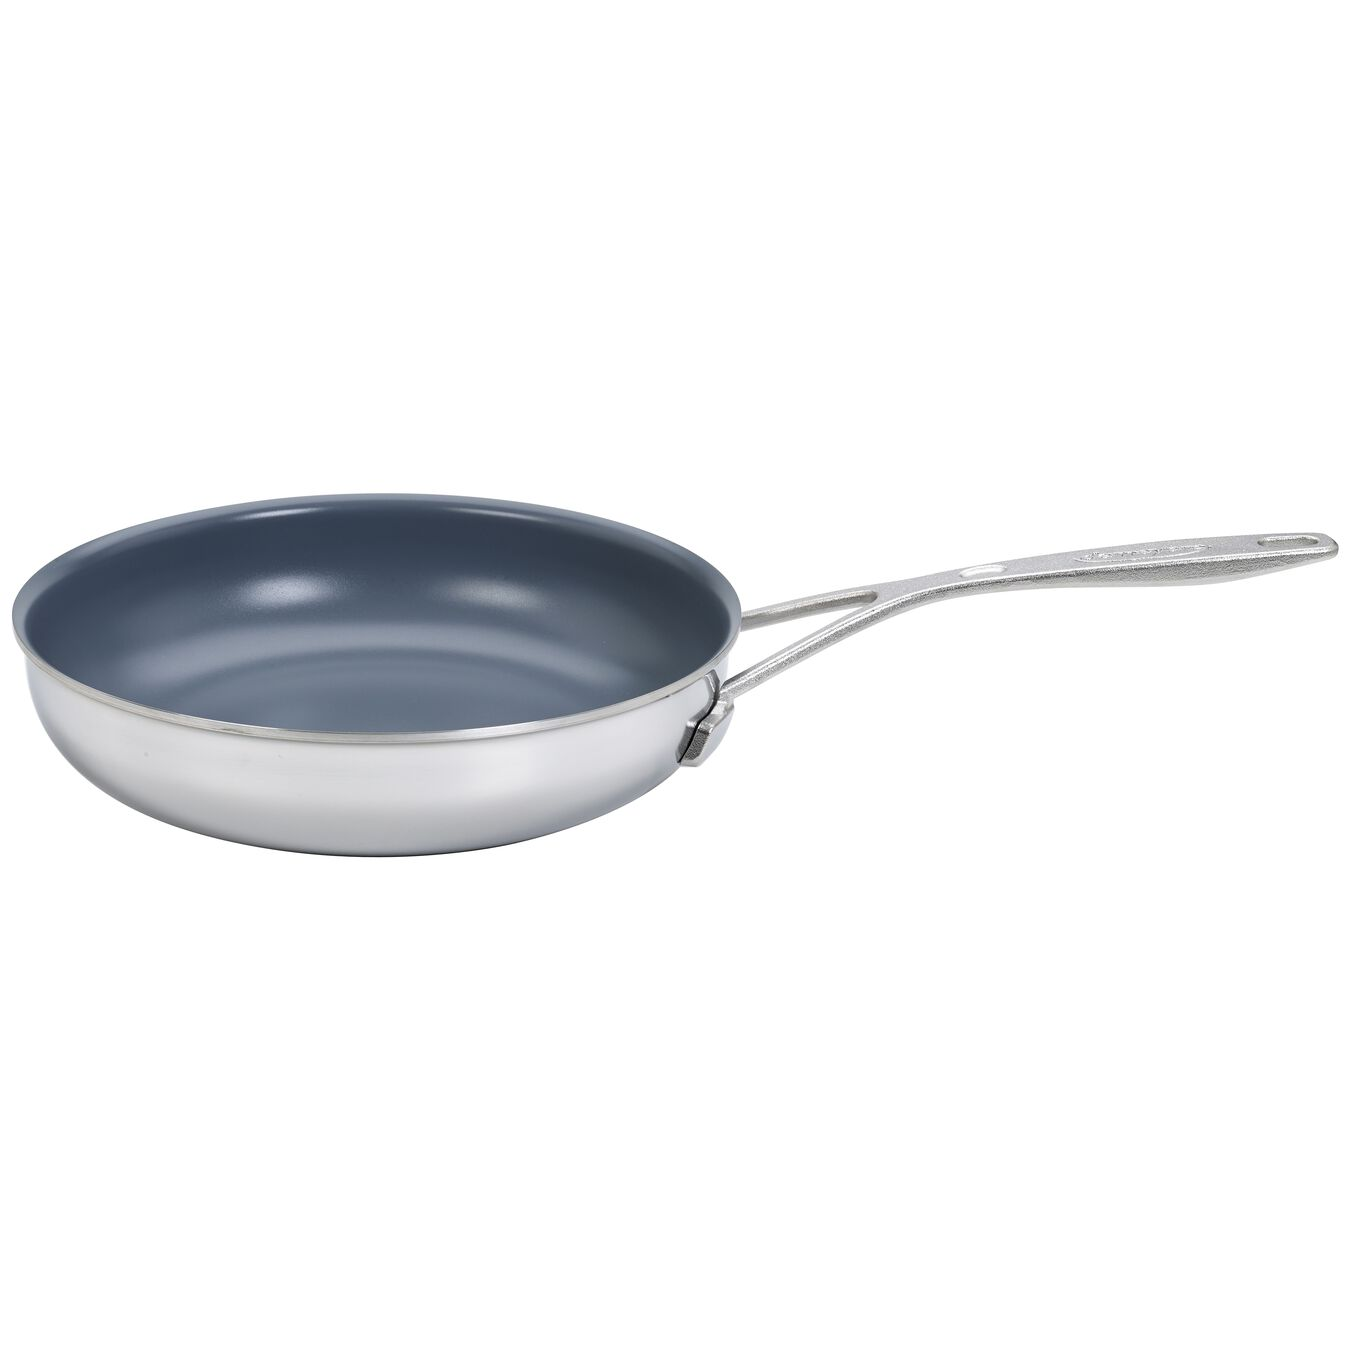 11-inch, 18/10 Stainless Steel, Ceramic, Frying pan,,large 1